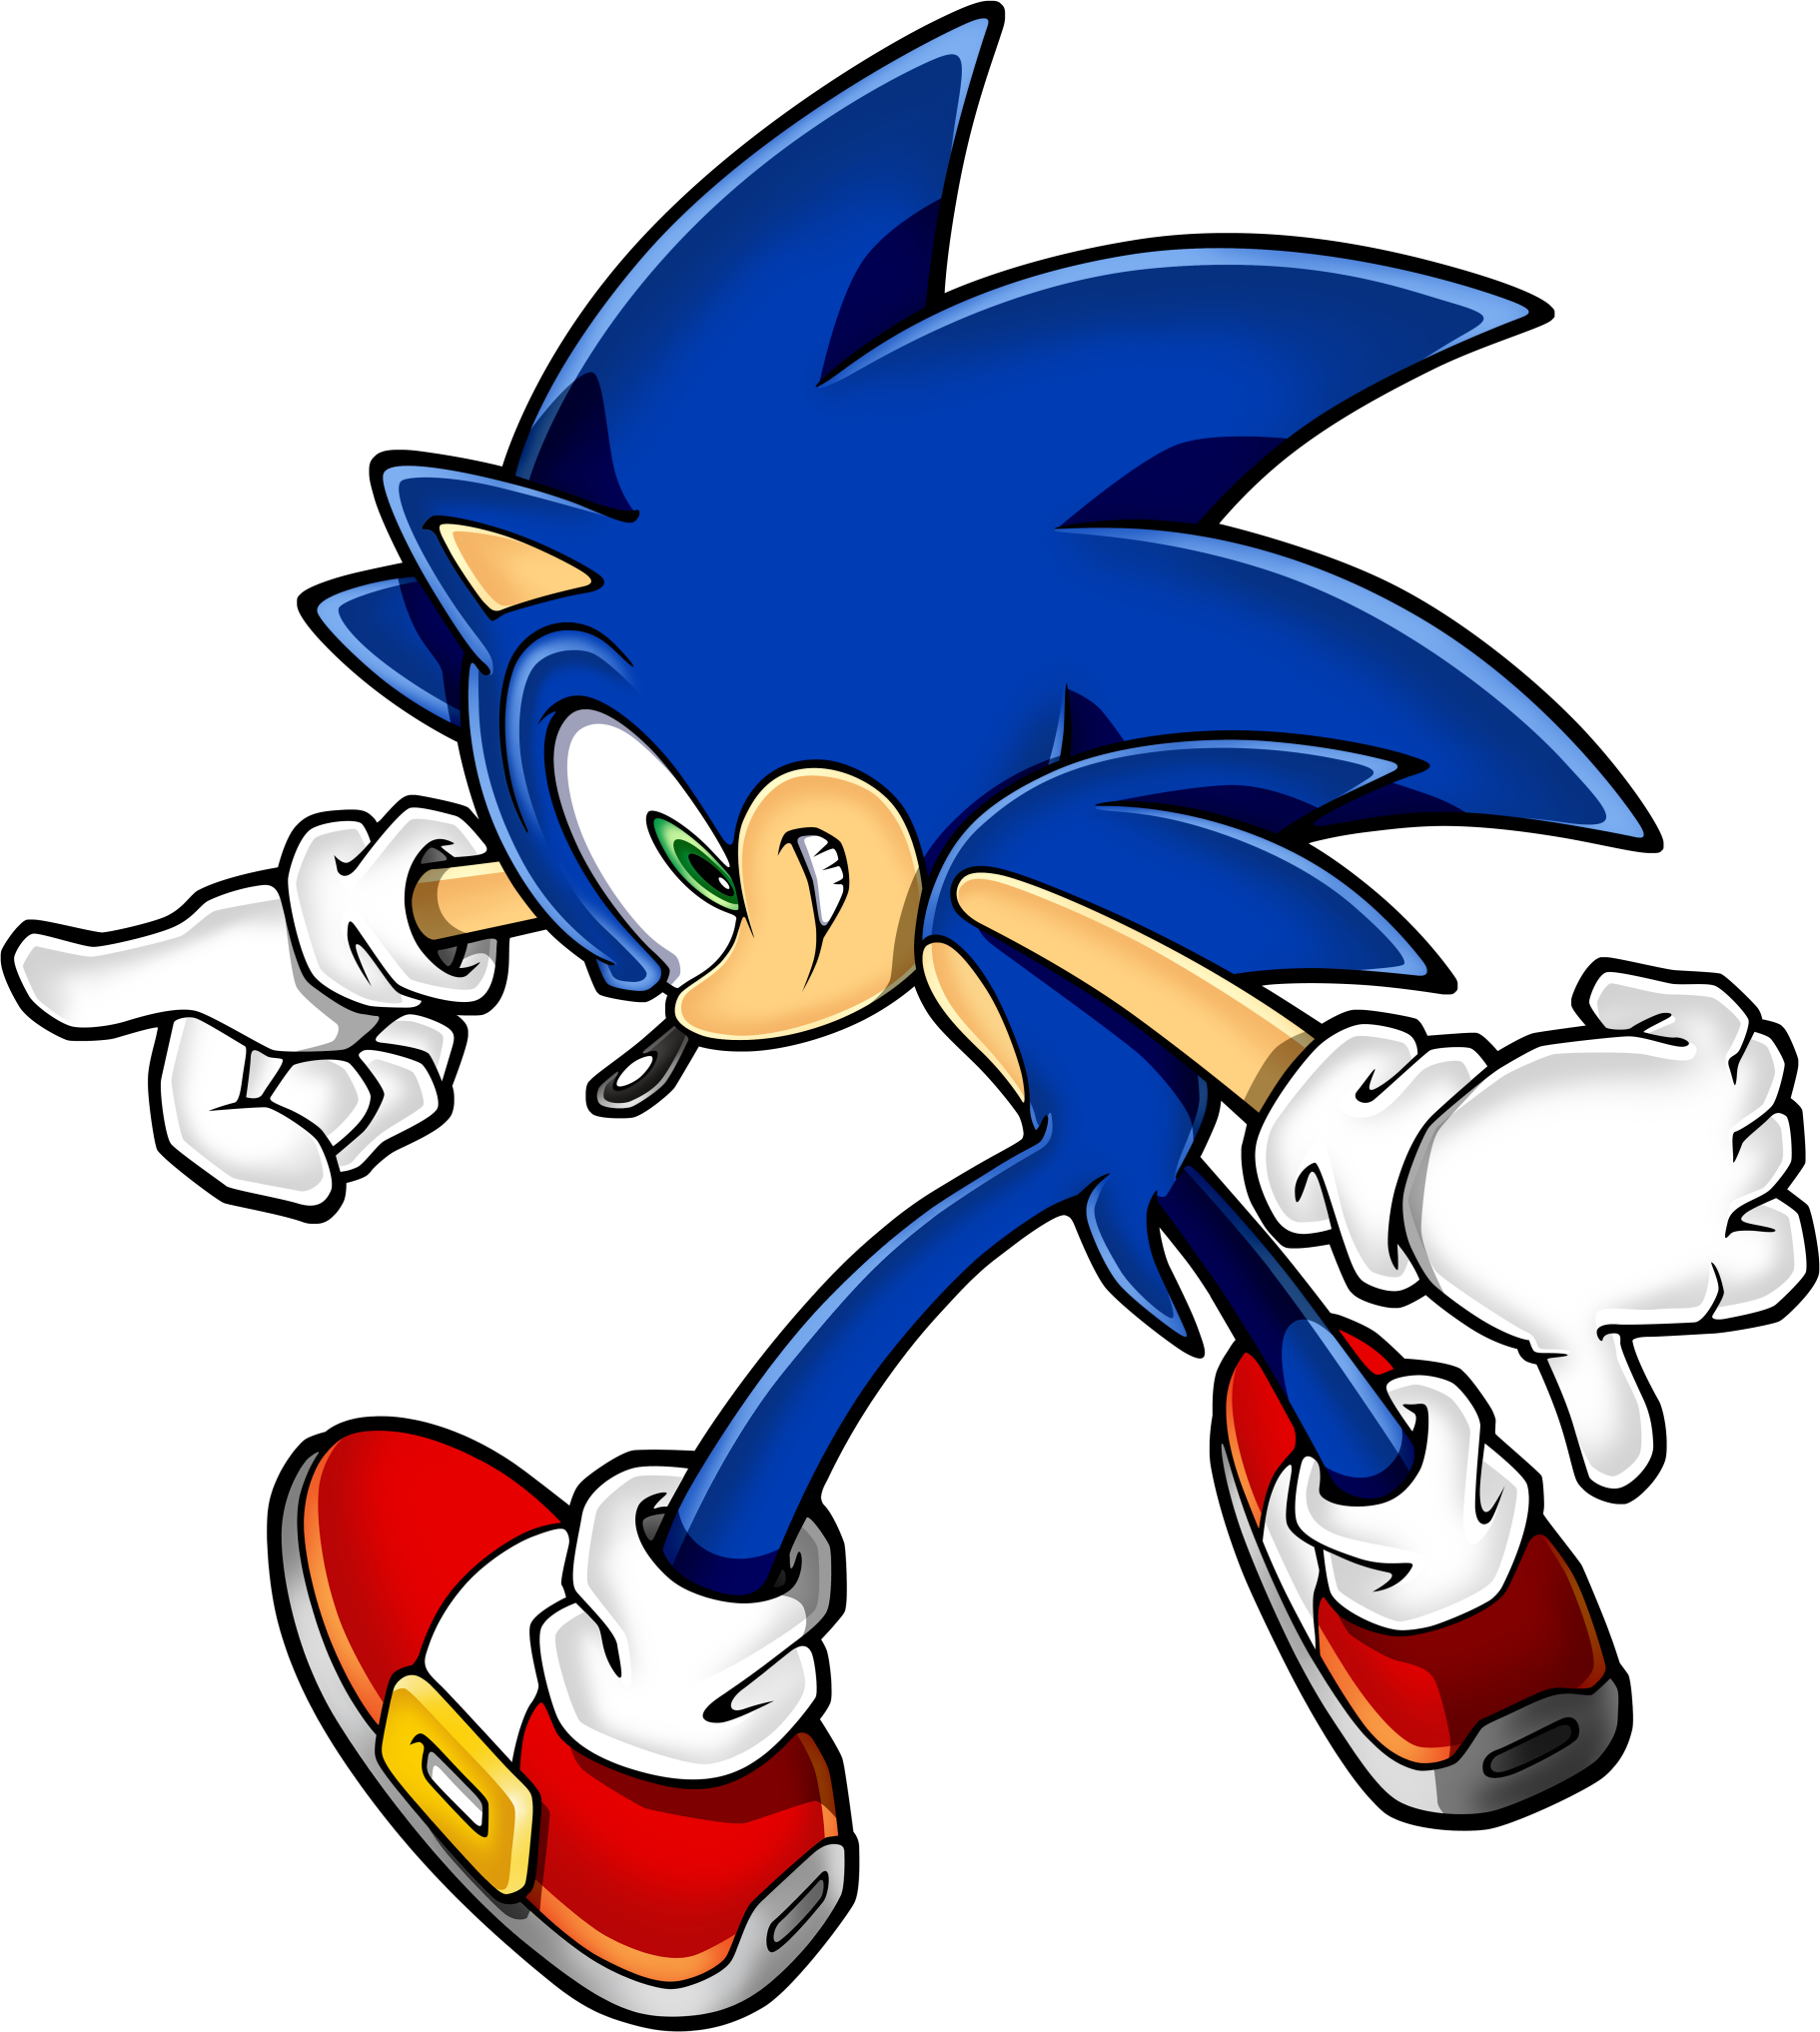 [IMG]http://images3.wikia.nocookie.net/__cb20101018071923/sonic/images/9/9f/Sonic_Art_Assets_DVD_-_Sonic_The_Hedgehog_-_8.png[/IMG]